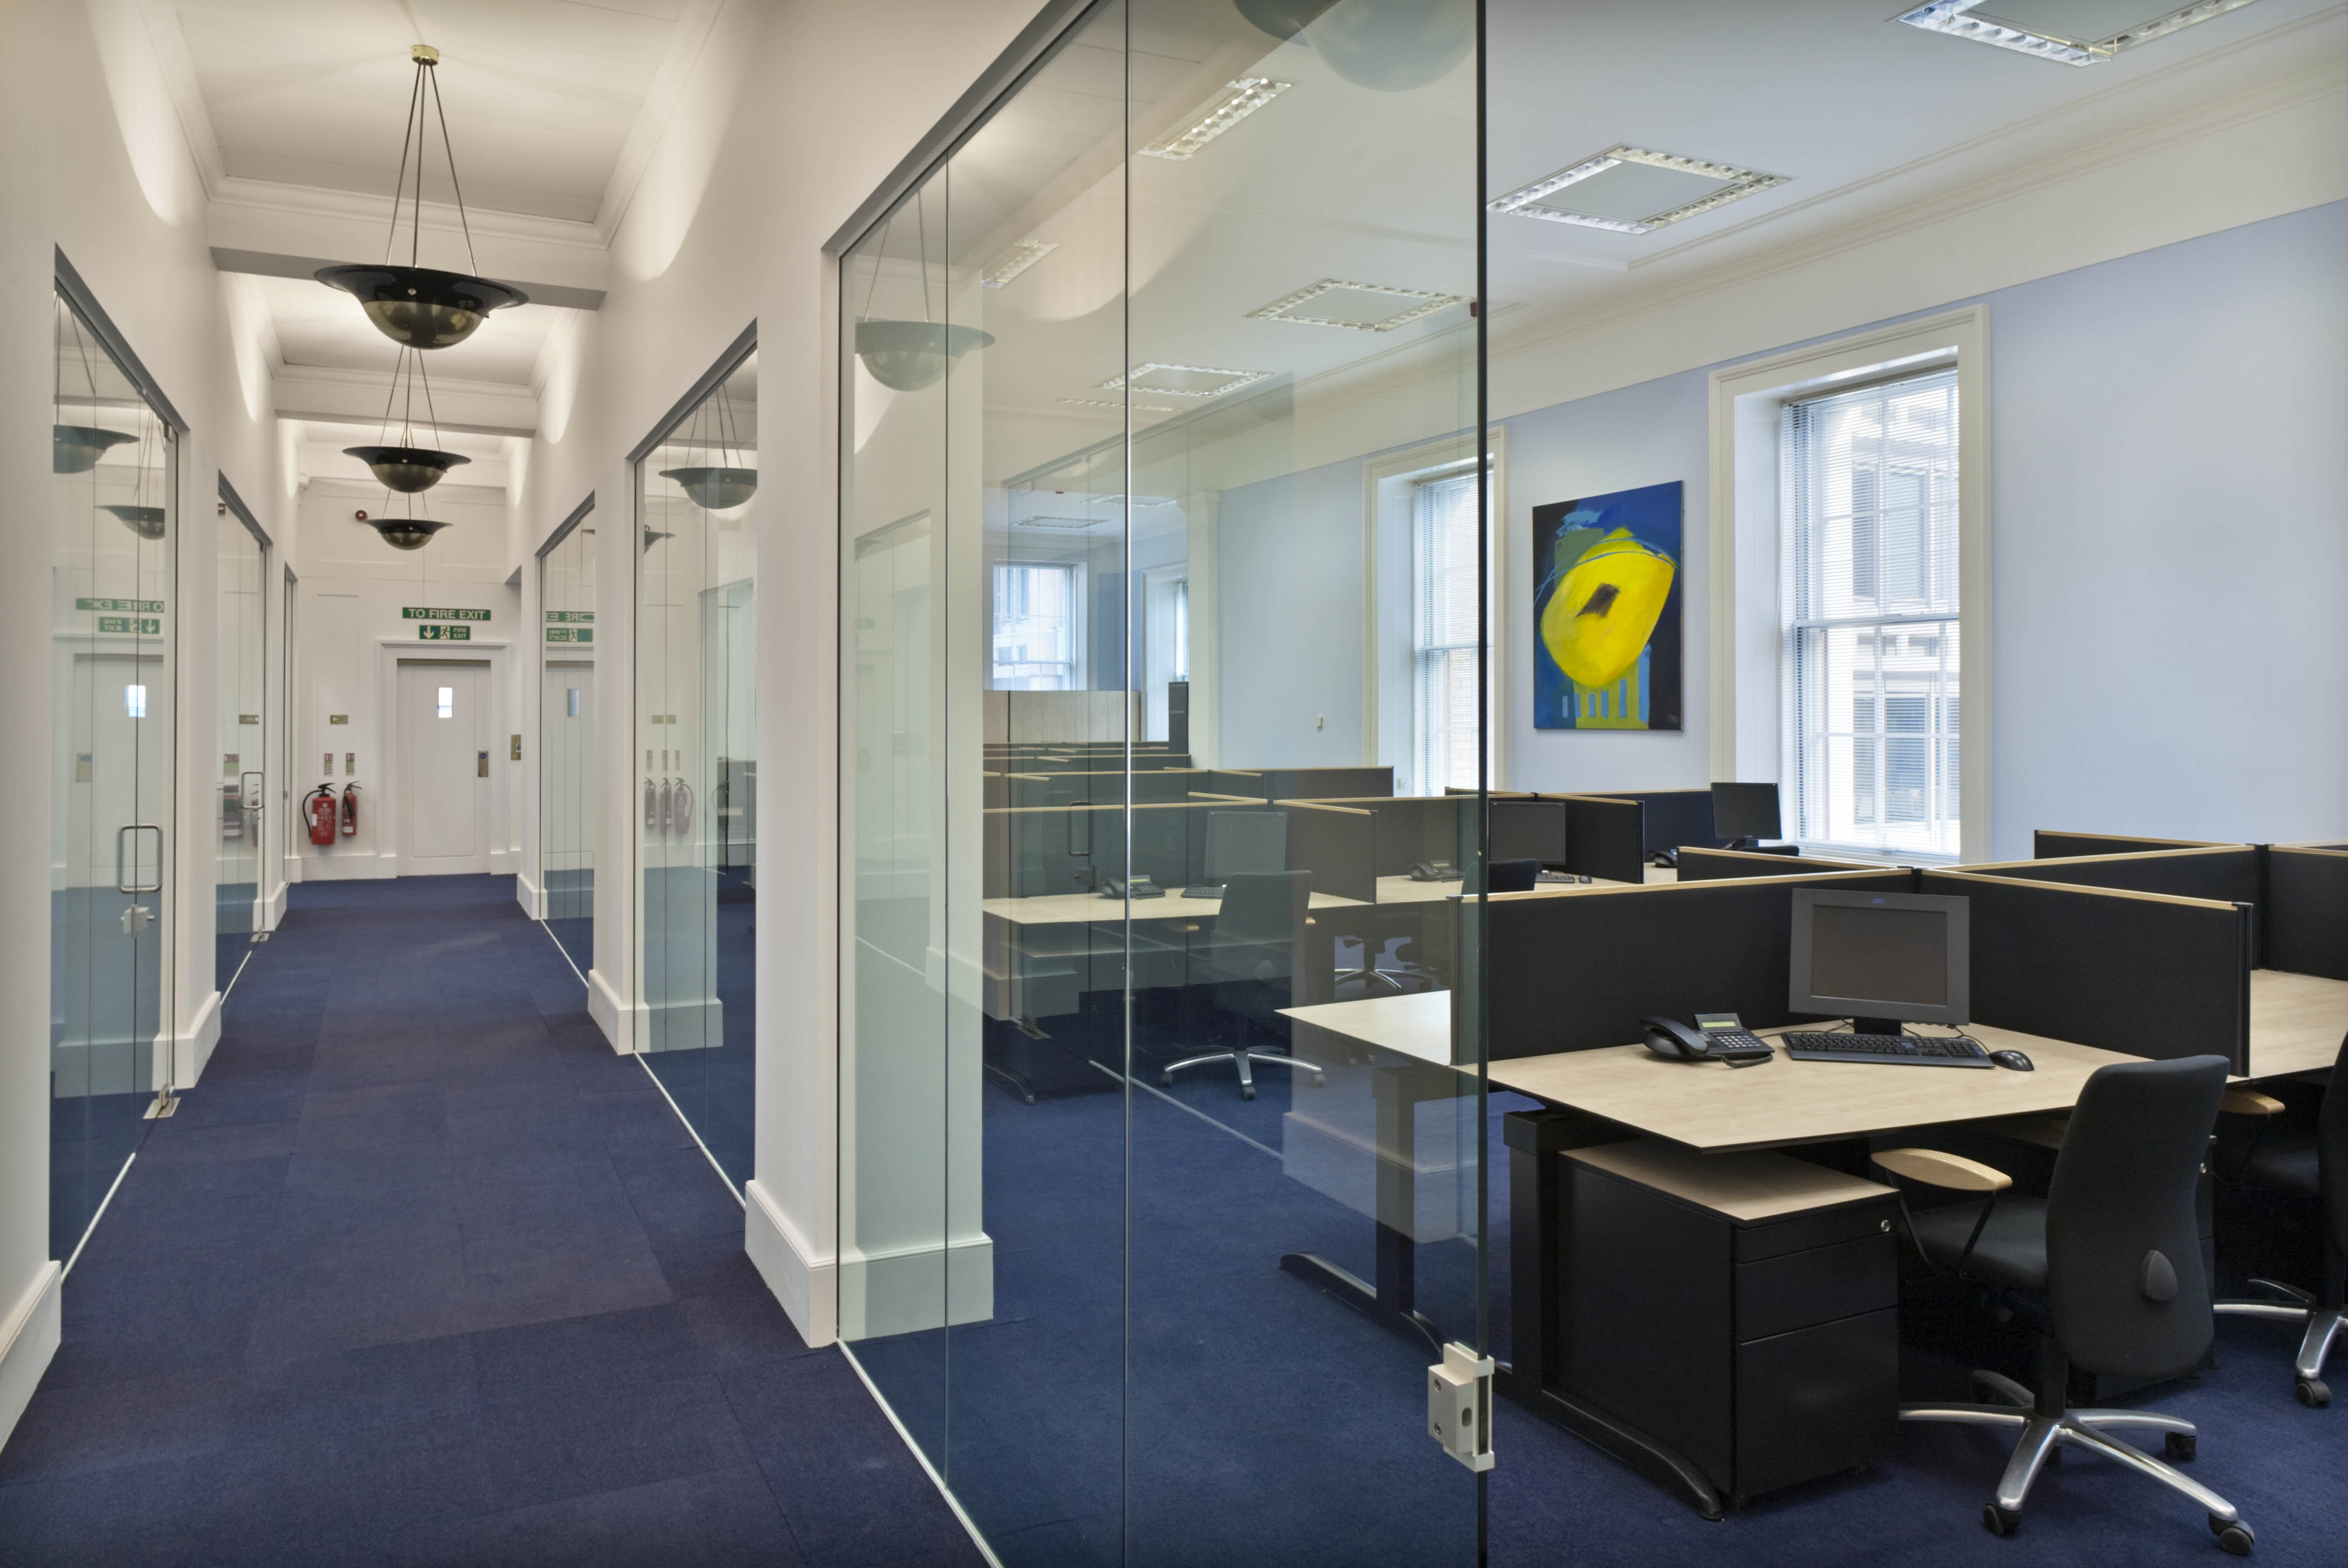 Serviced offices royal mint court city of london ec3n property id 19682 - University of london accommodation office ...